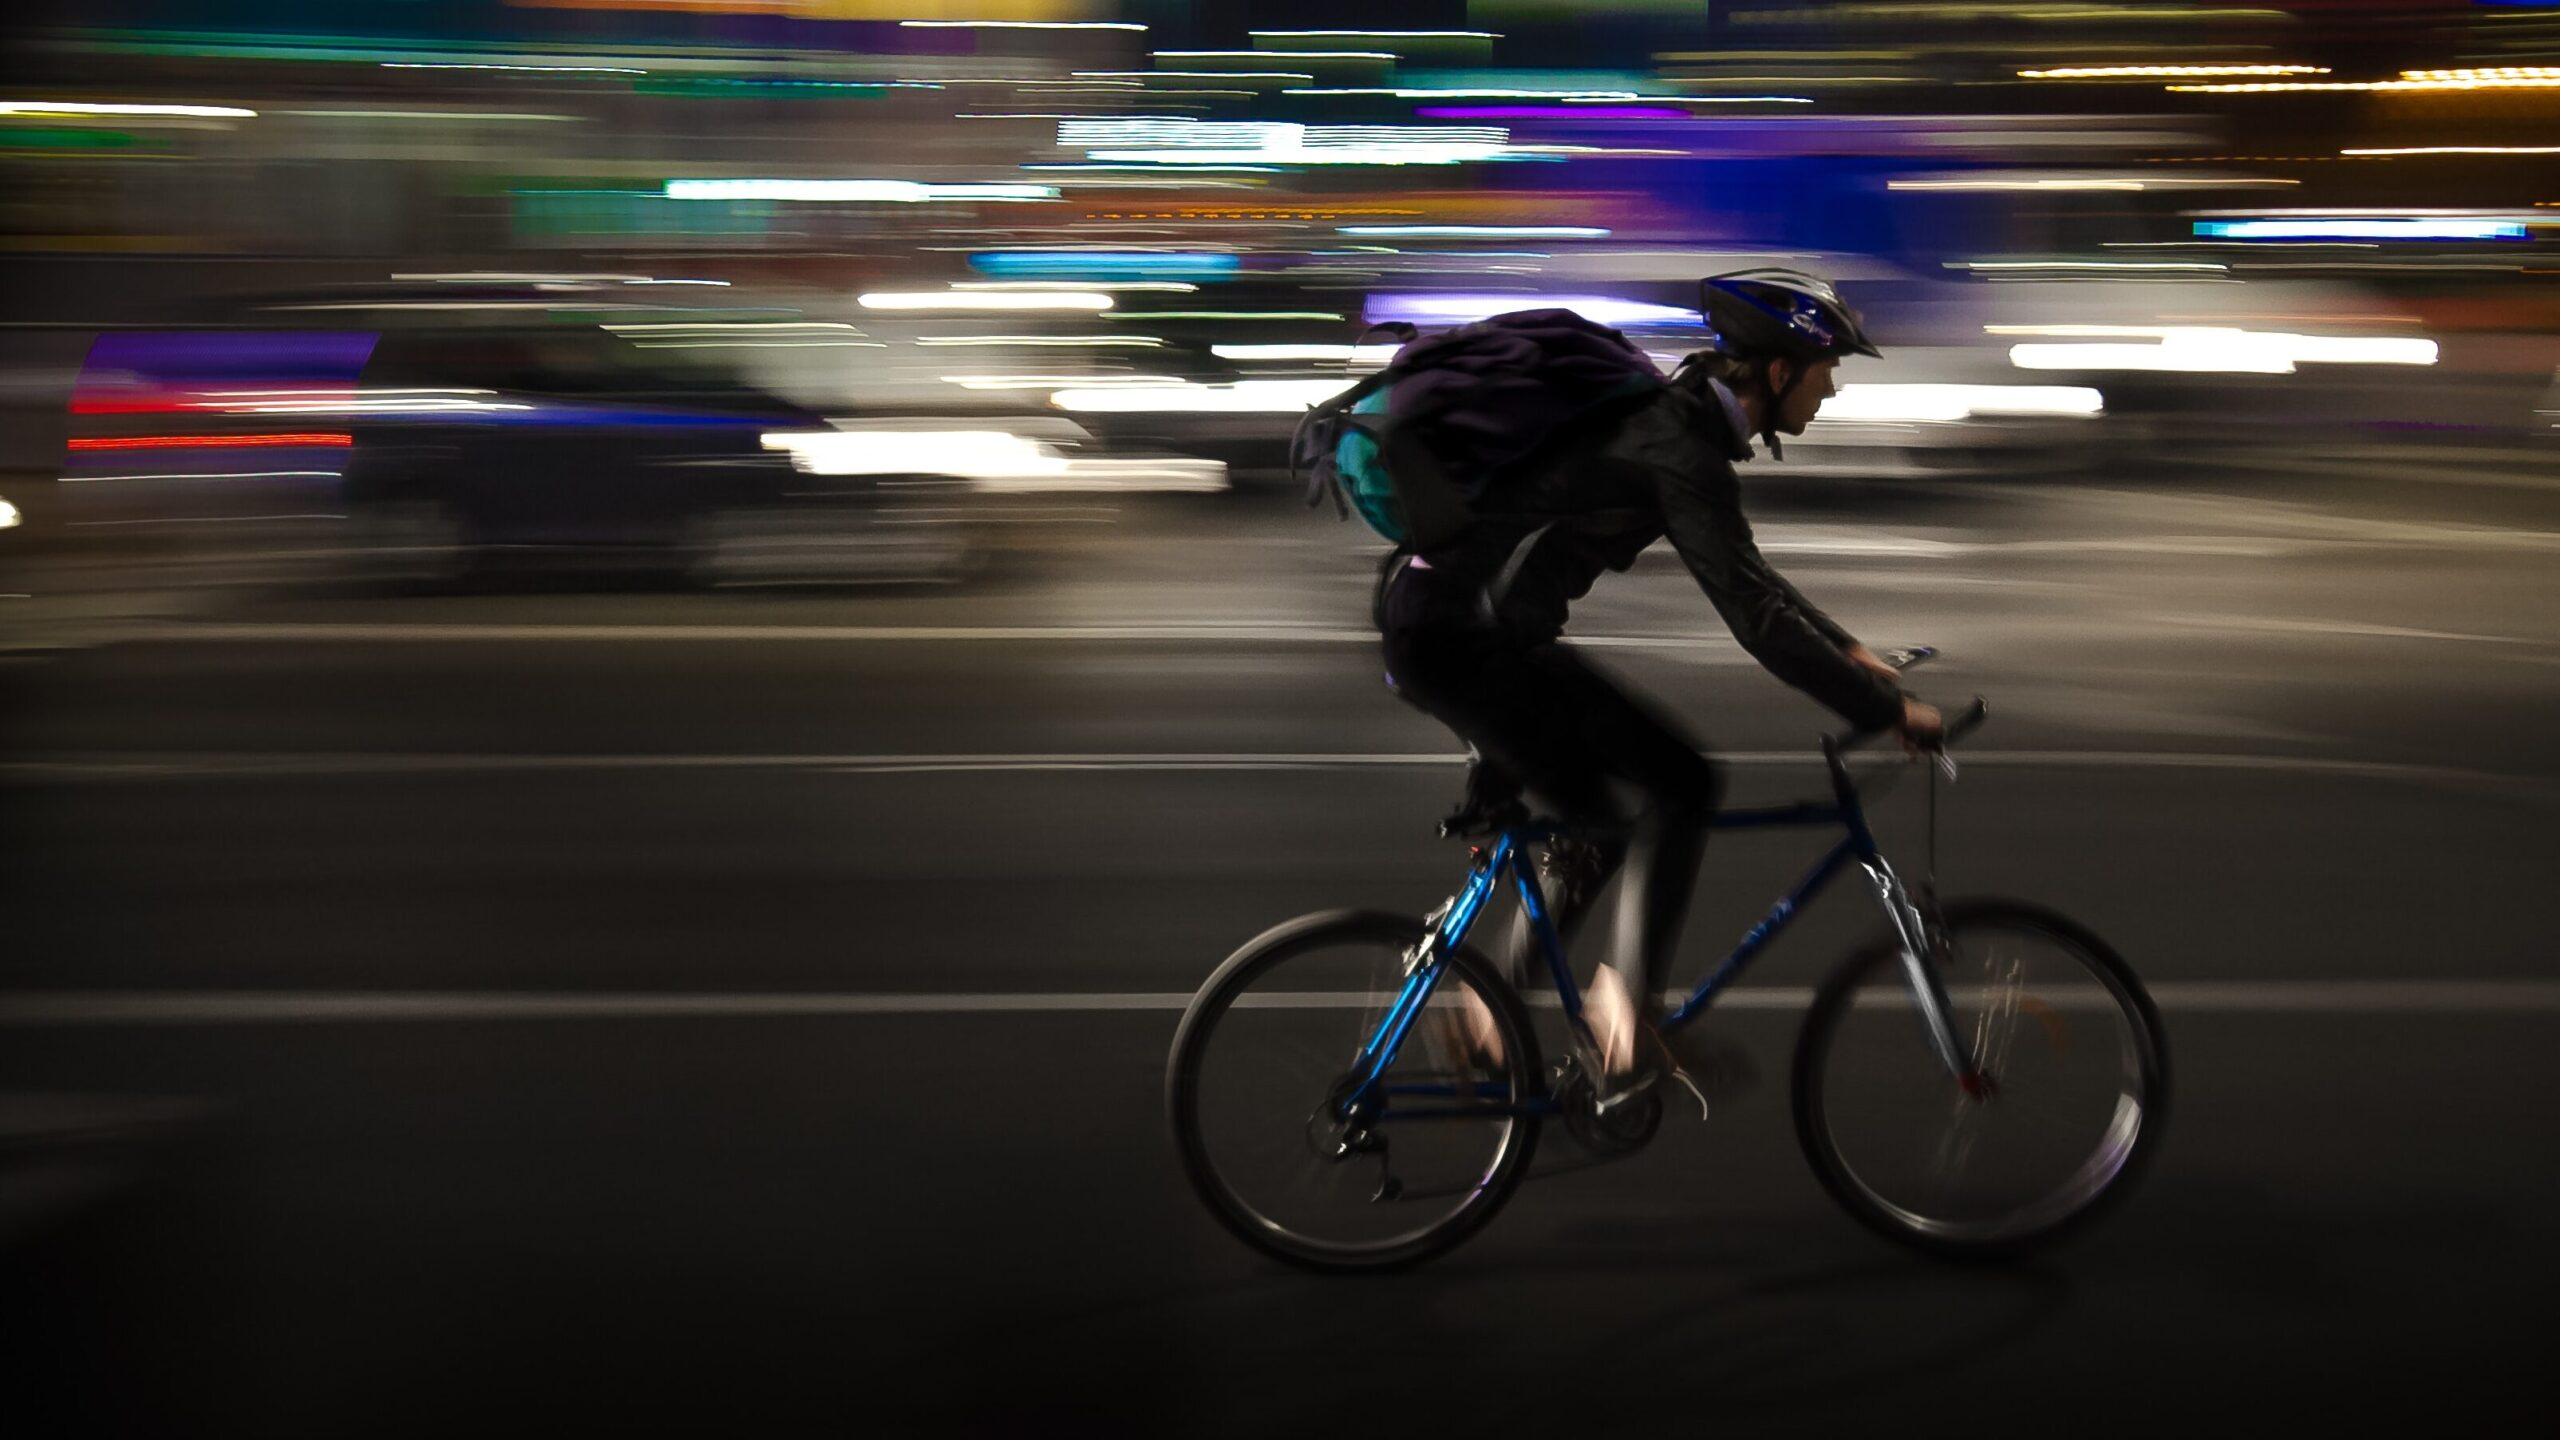 Bicycling at night